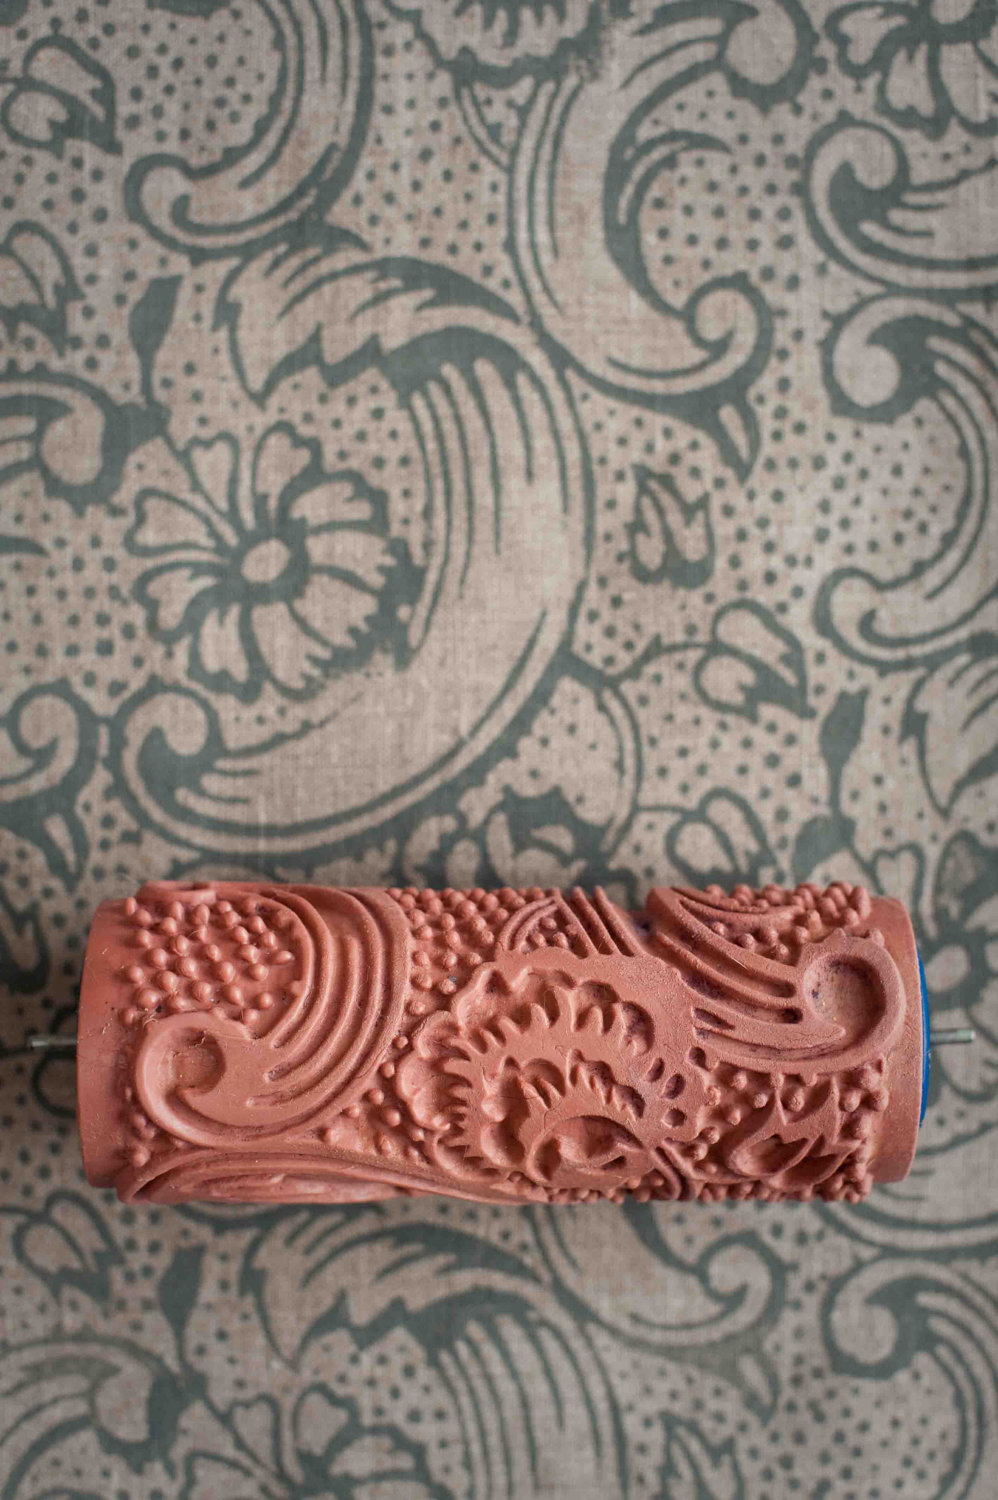 The paint roller with an interesting pattern namablog com for Wallpaper roller home depot